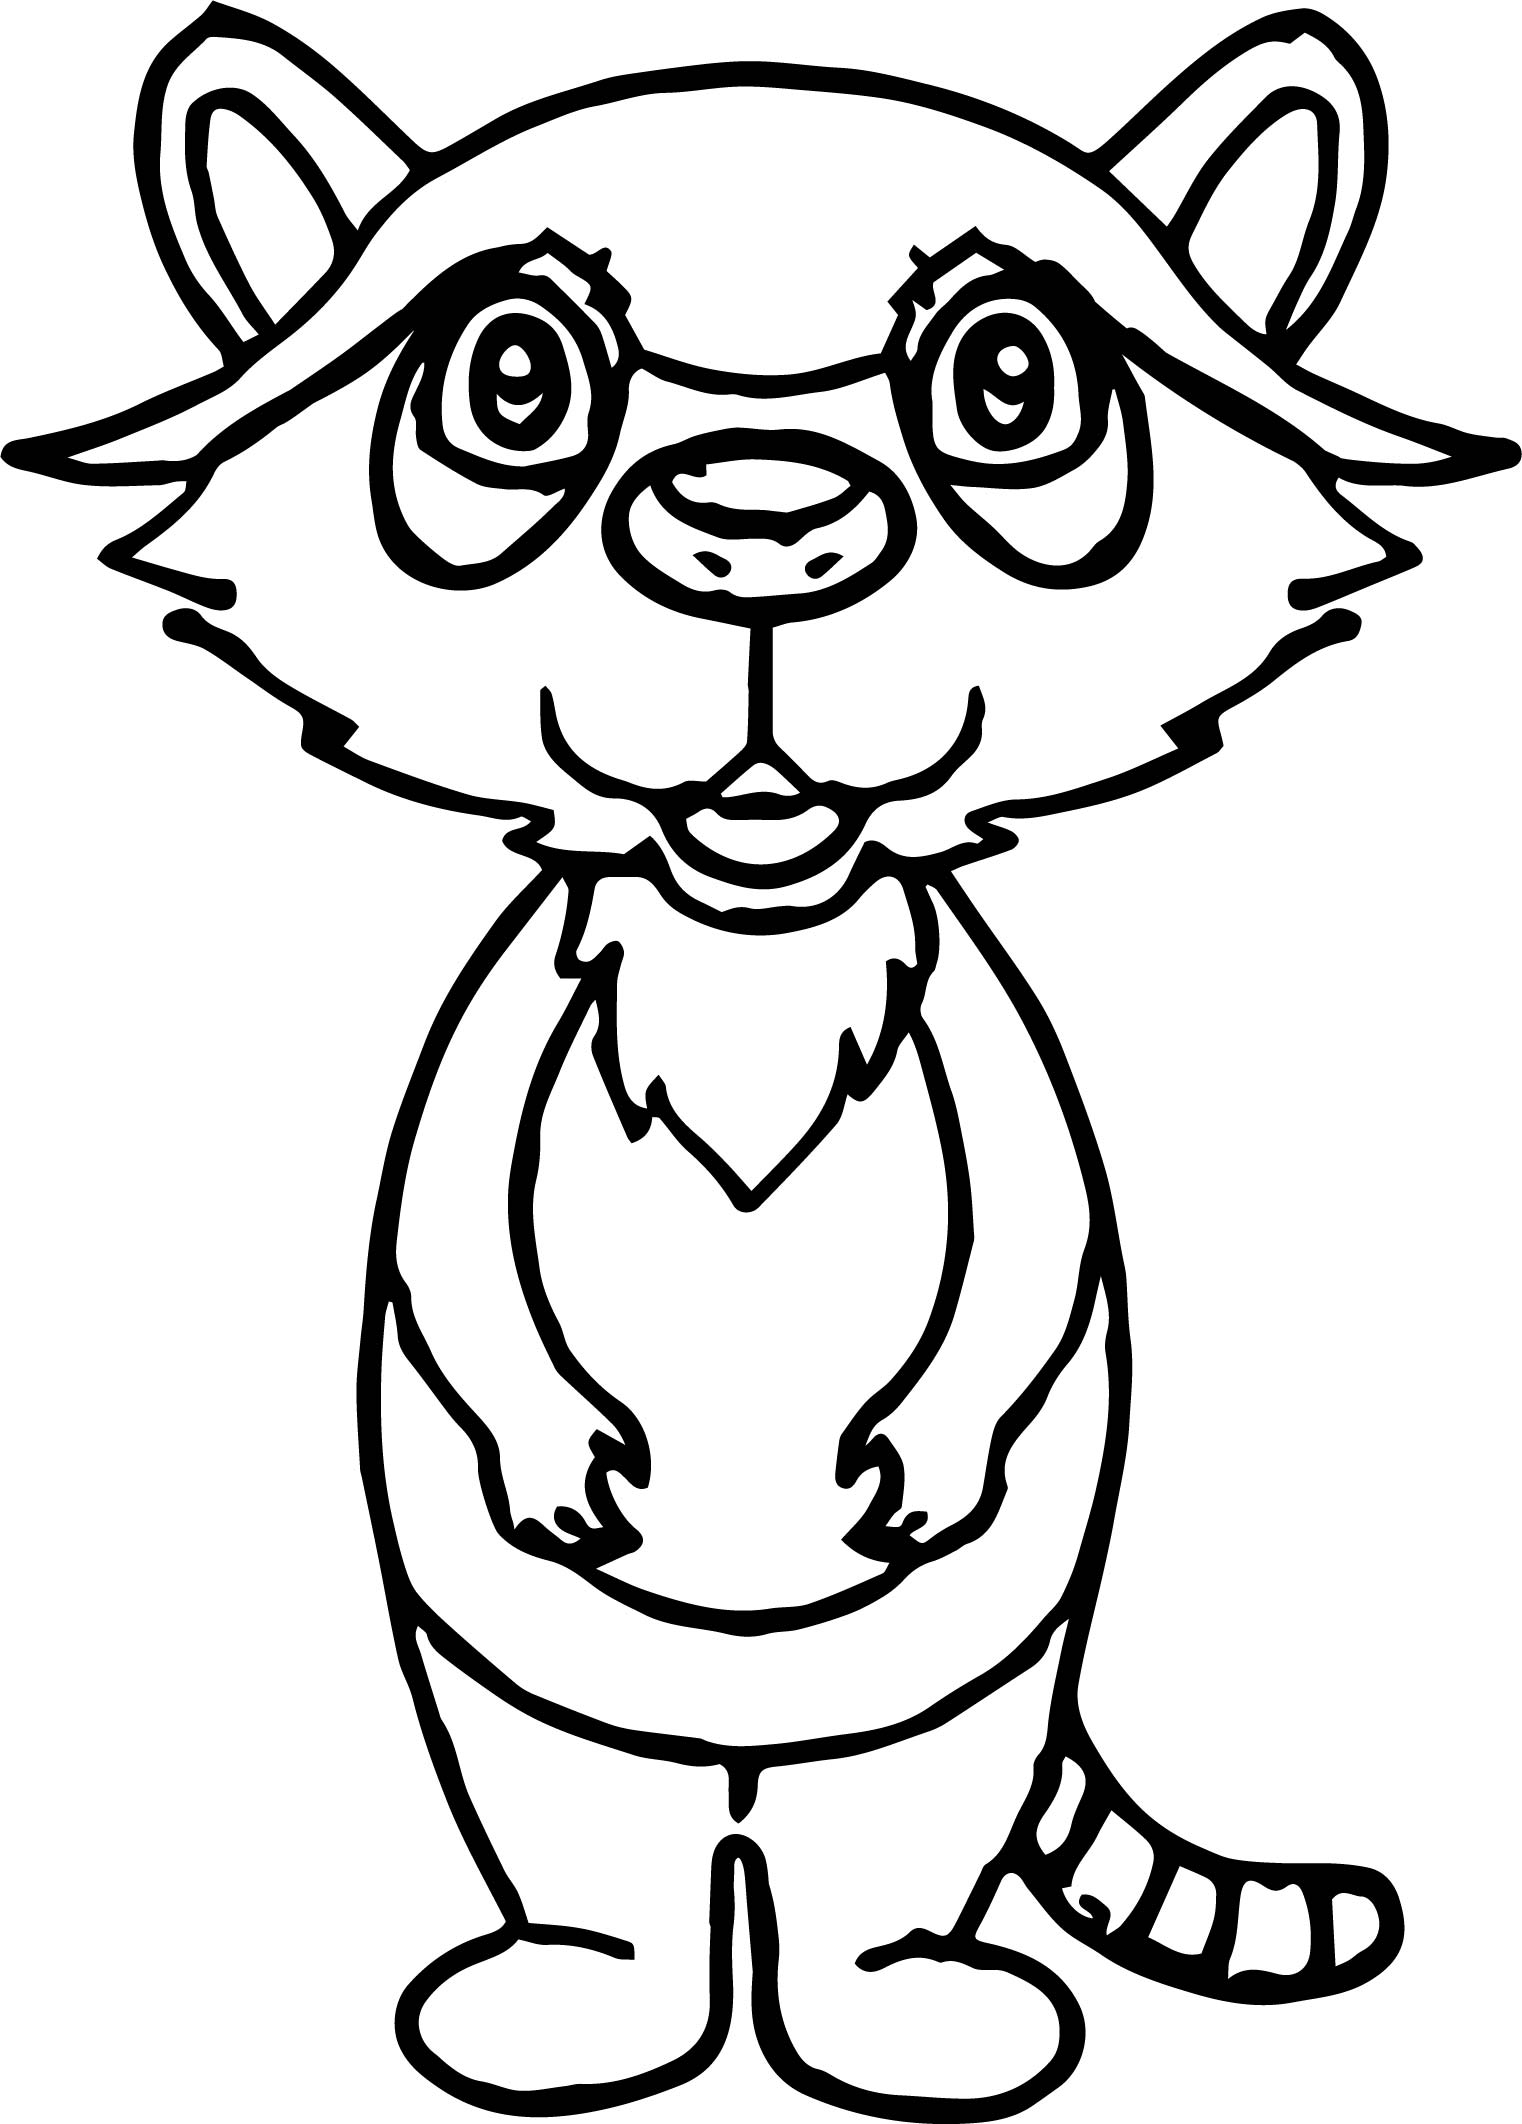 Raccoon Face Page Coloring Pages Raccoon Face Coloring Page